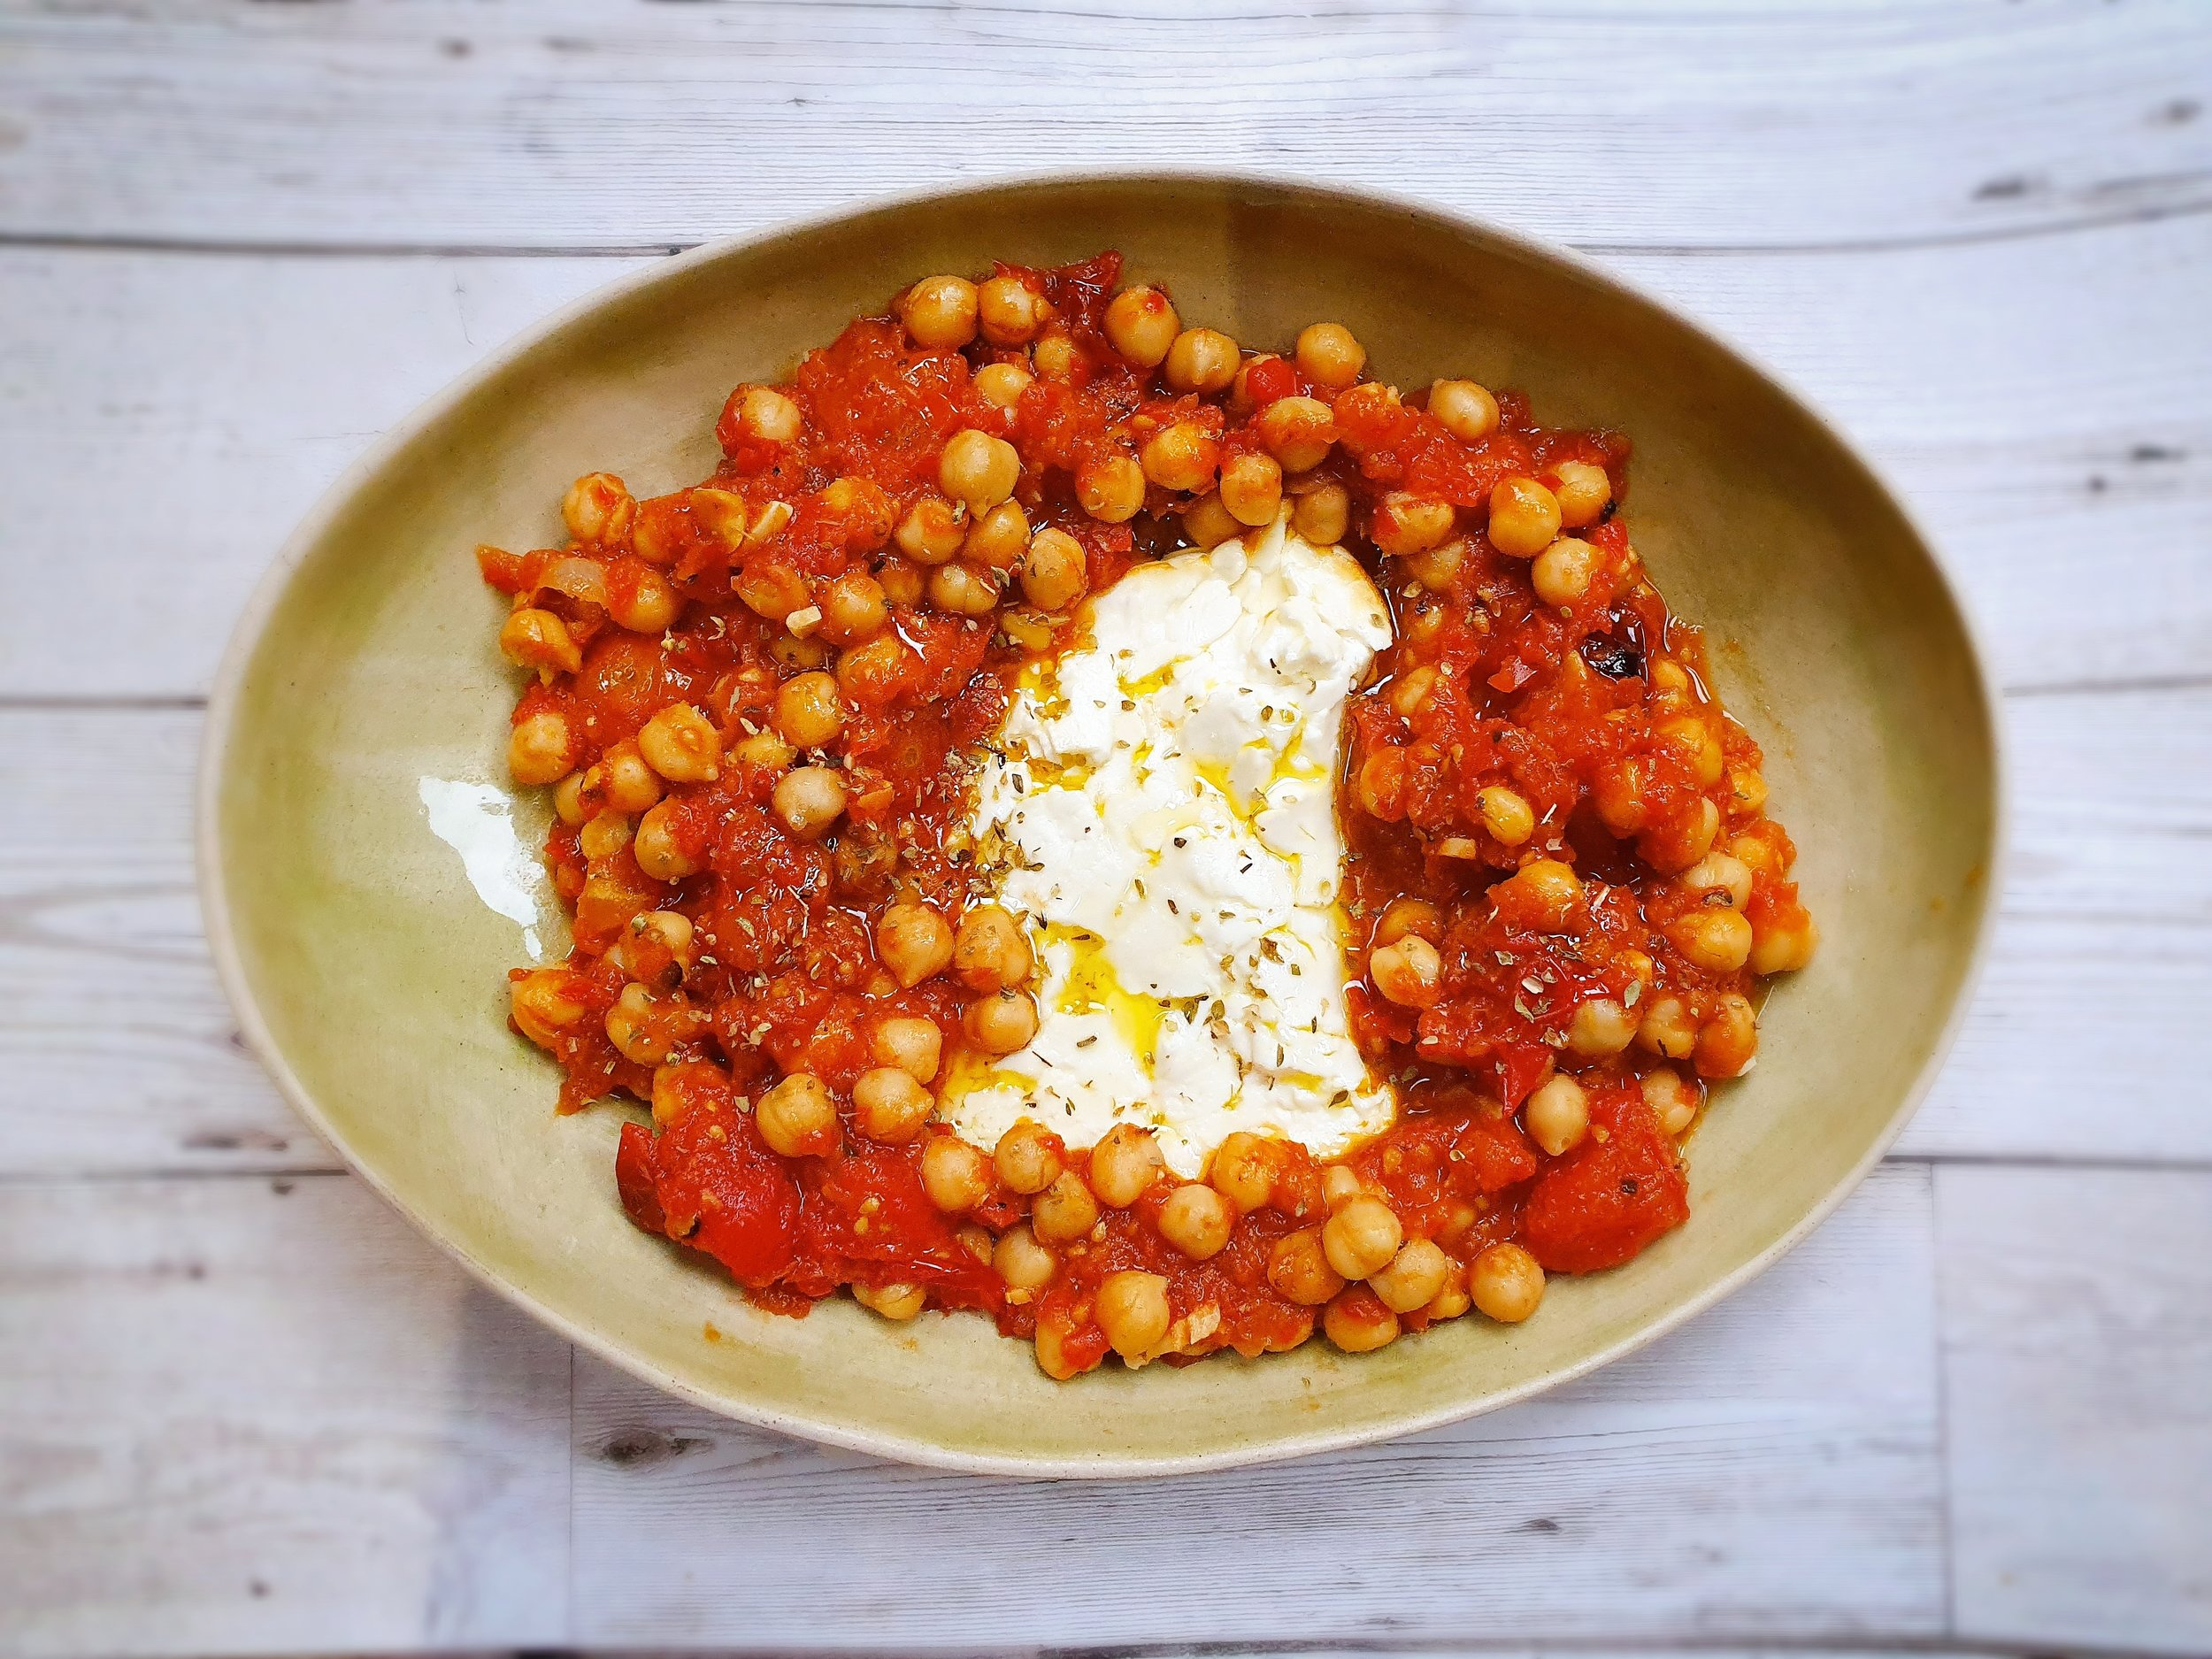 Baked feta with chickpeas and tomatoes